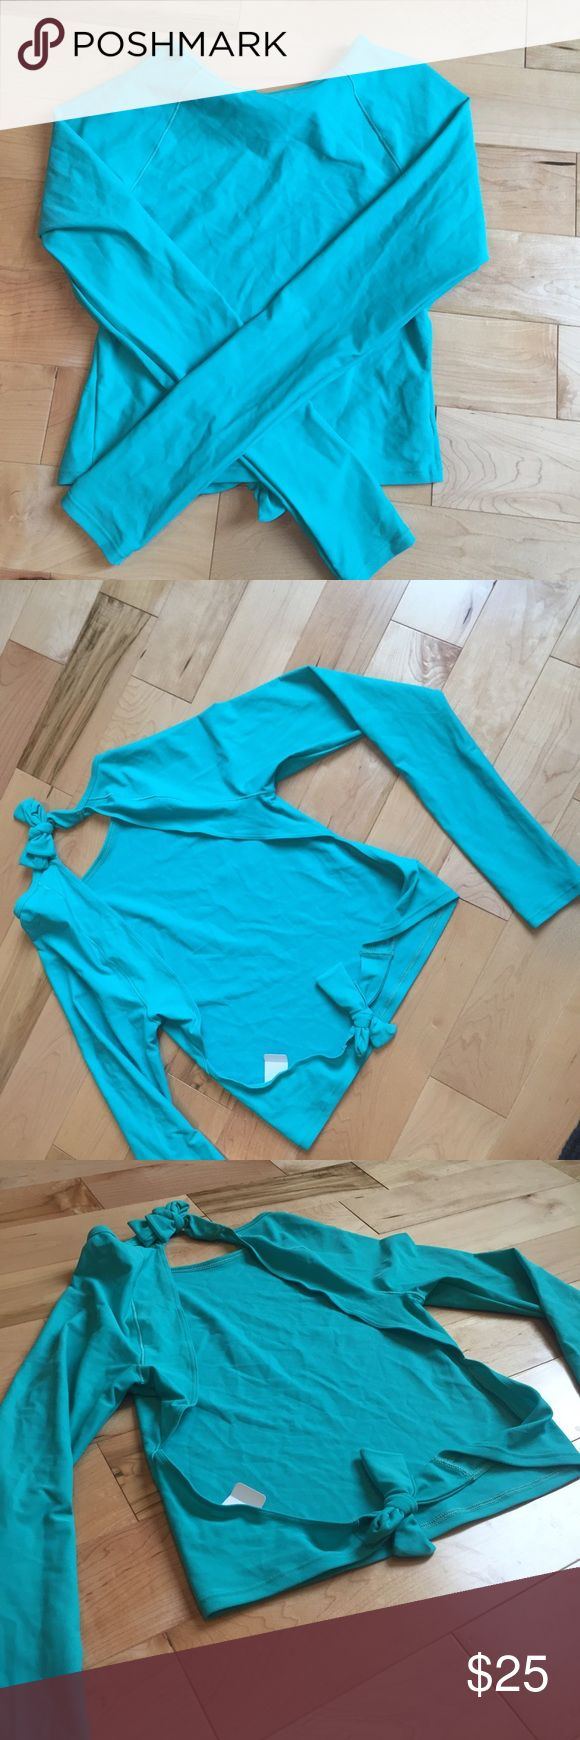 Aerie American Eagle rash guard Open back rash guard by Aerie. New with tags.  See additional listings for matching bikini American Eagle Outfitters Swim Bikinis